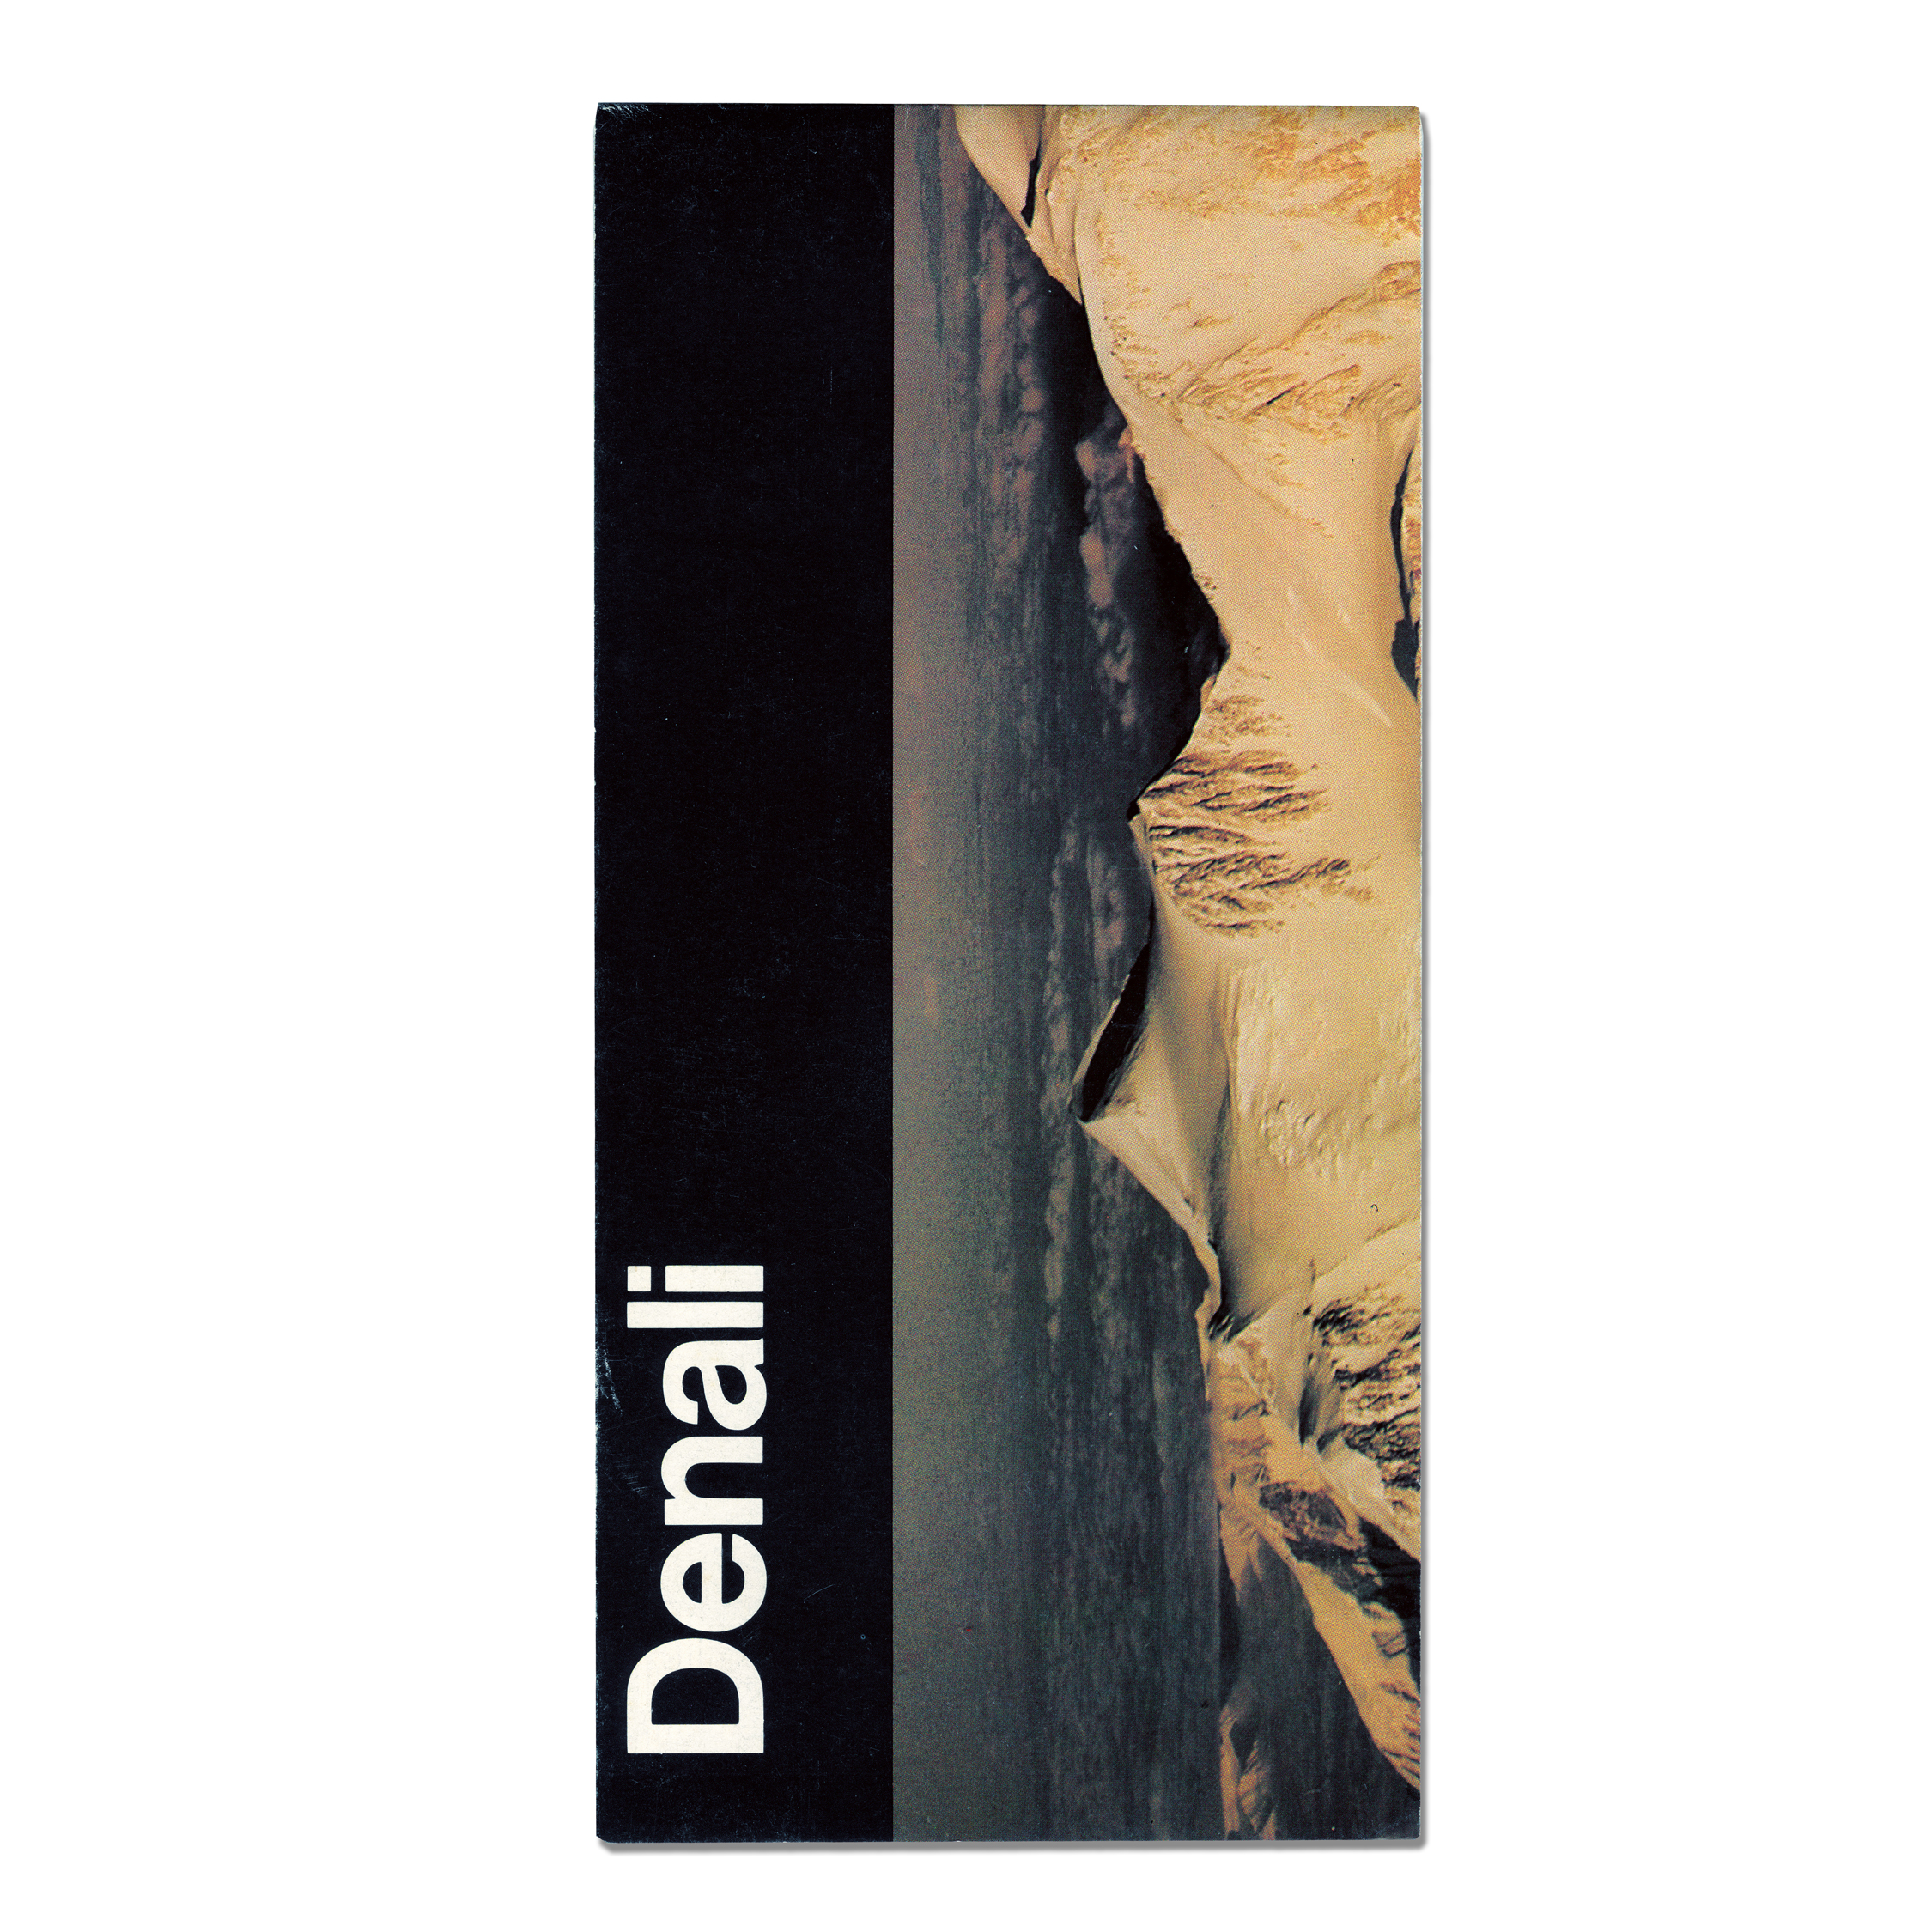 1988_denali_national_park_brochure.jpg